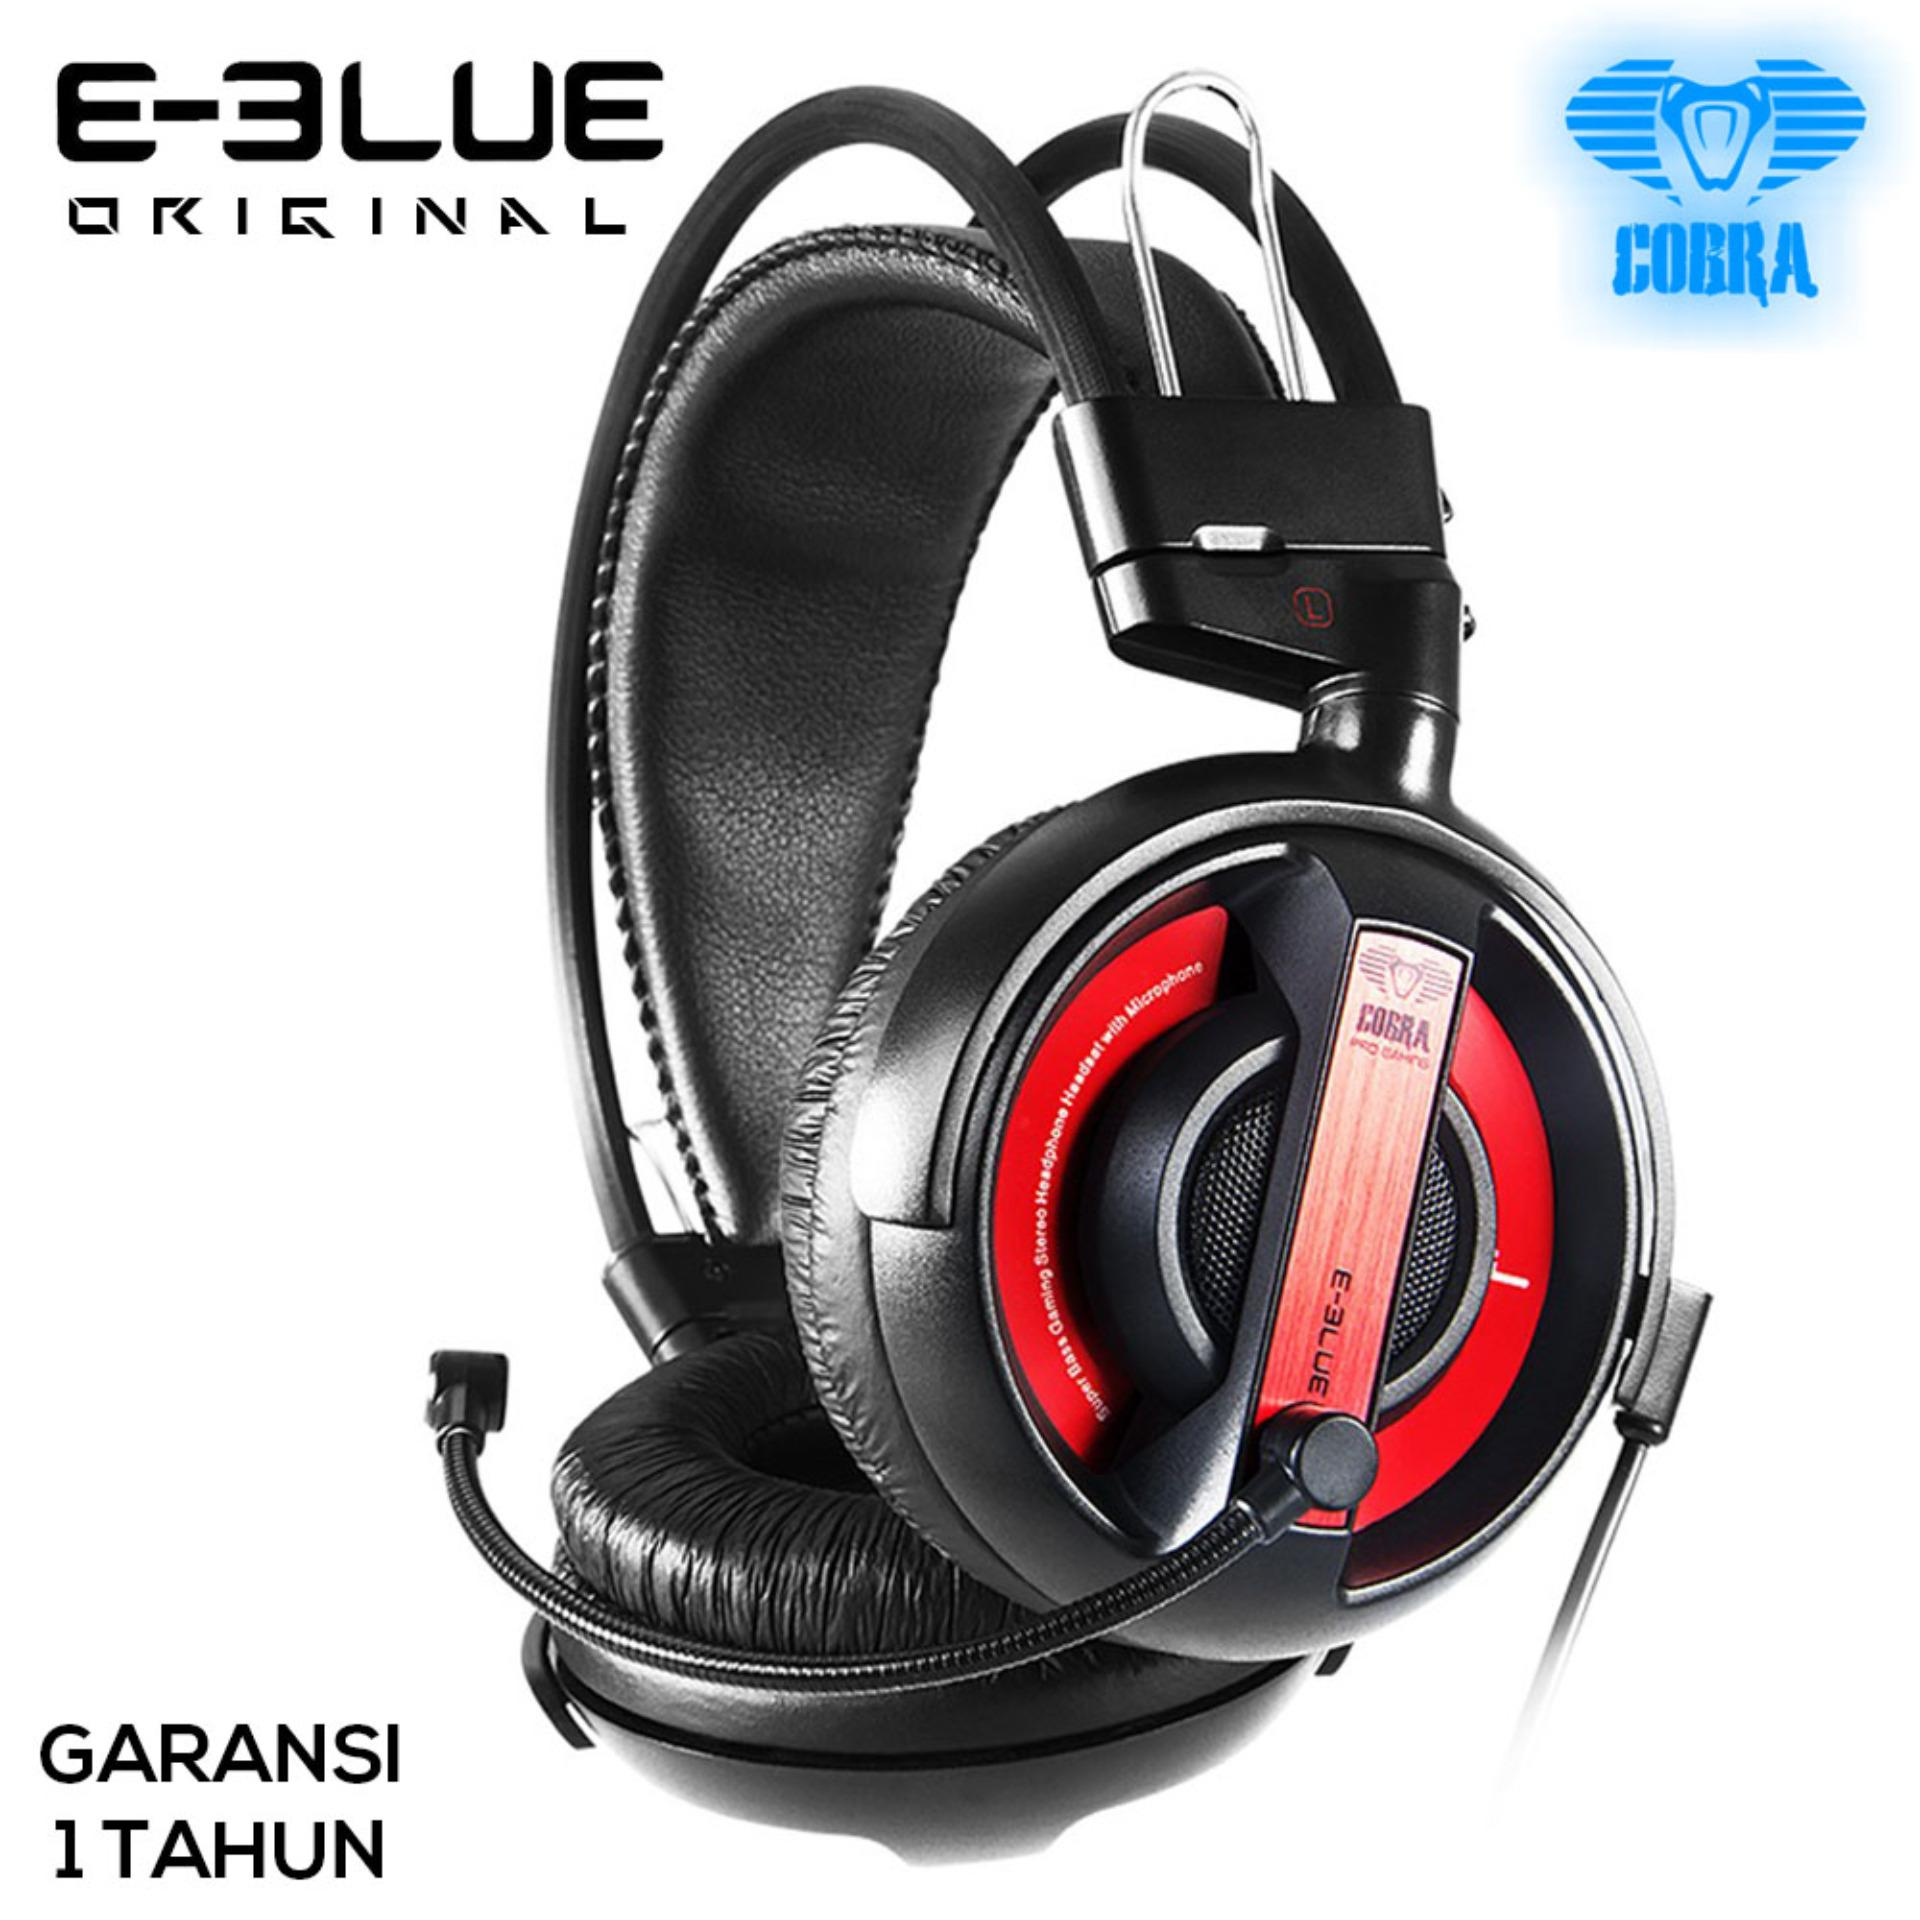 E-Blue Cobra Series Professional Gaming Headset  - EHS013 - Red